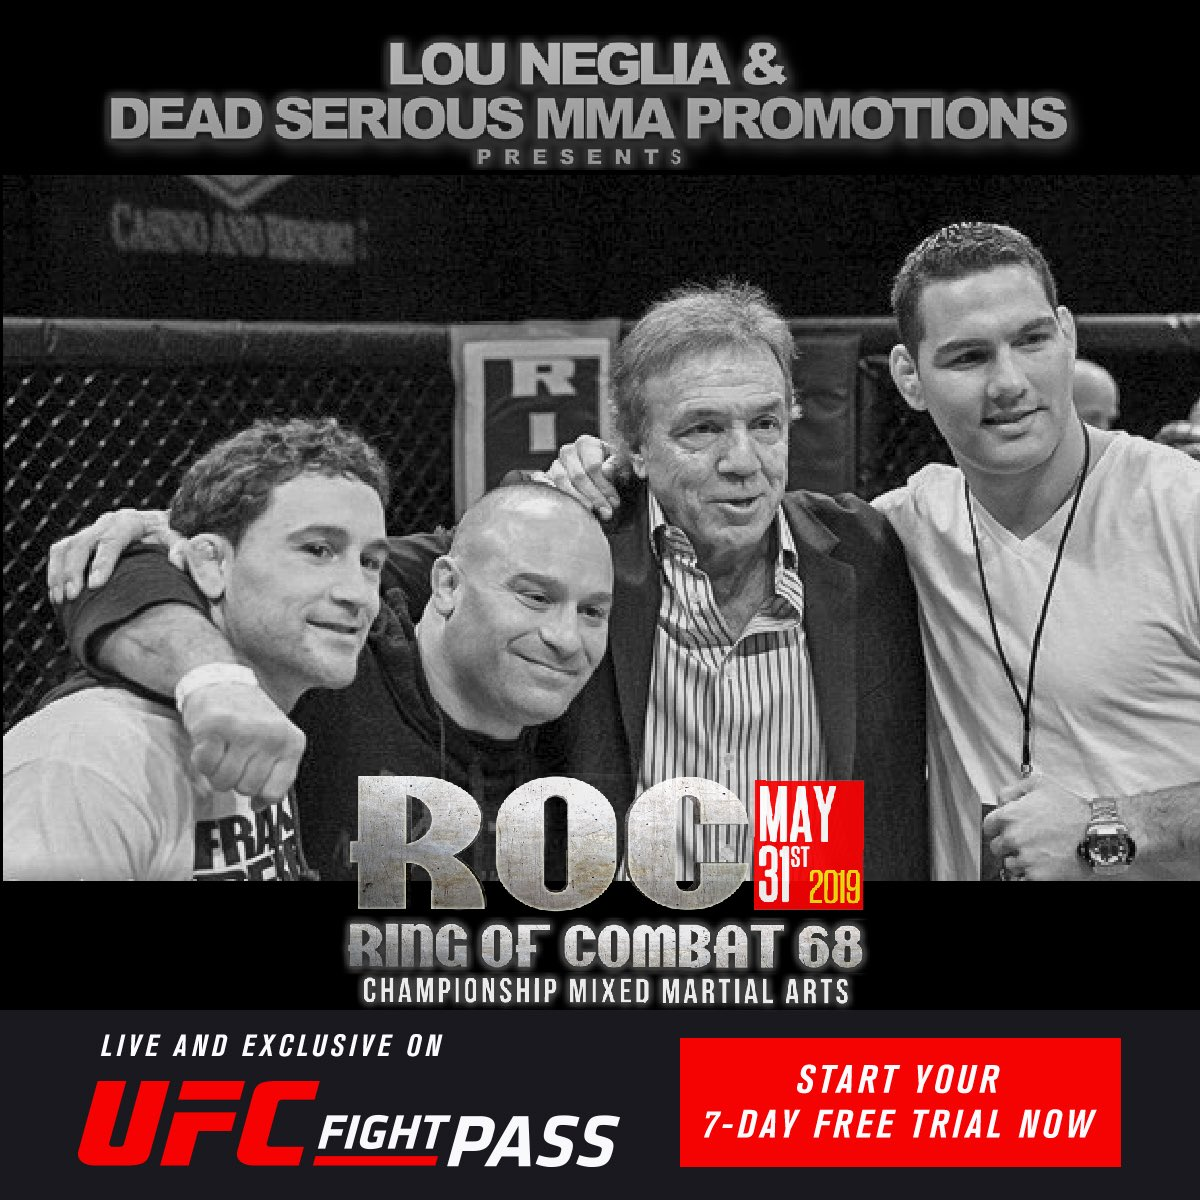 Every story has a beginning, and ROC is proud to have been there at the start for @MattSerraUFC, @FrankieEdgar, @chrisweidman, and over 130 other UFC fighters  Tune in LIVE to @UFCFightPass on MAY 31 to witness the Future of Fighting compete at #ROC68  http://UFCFightPass.com